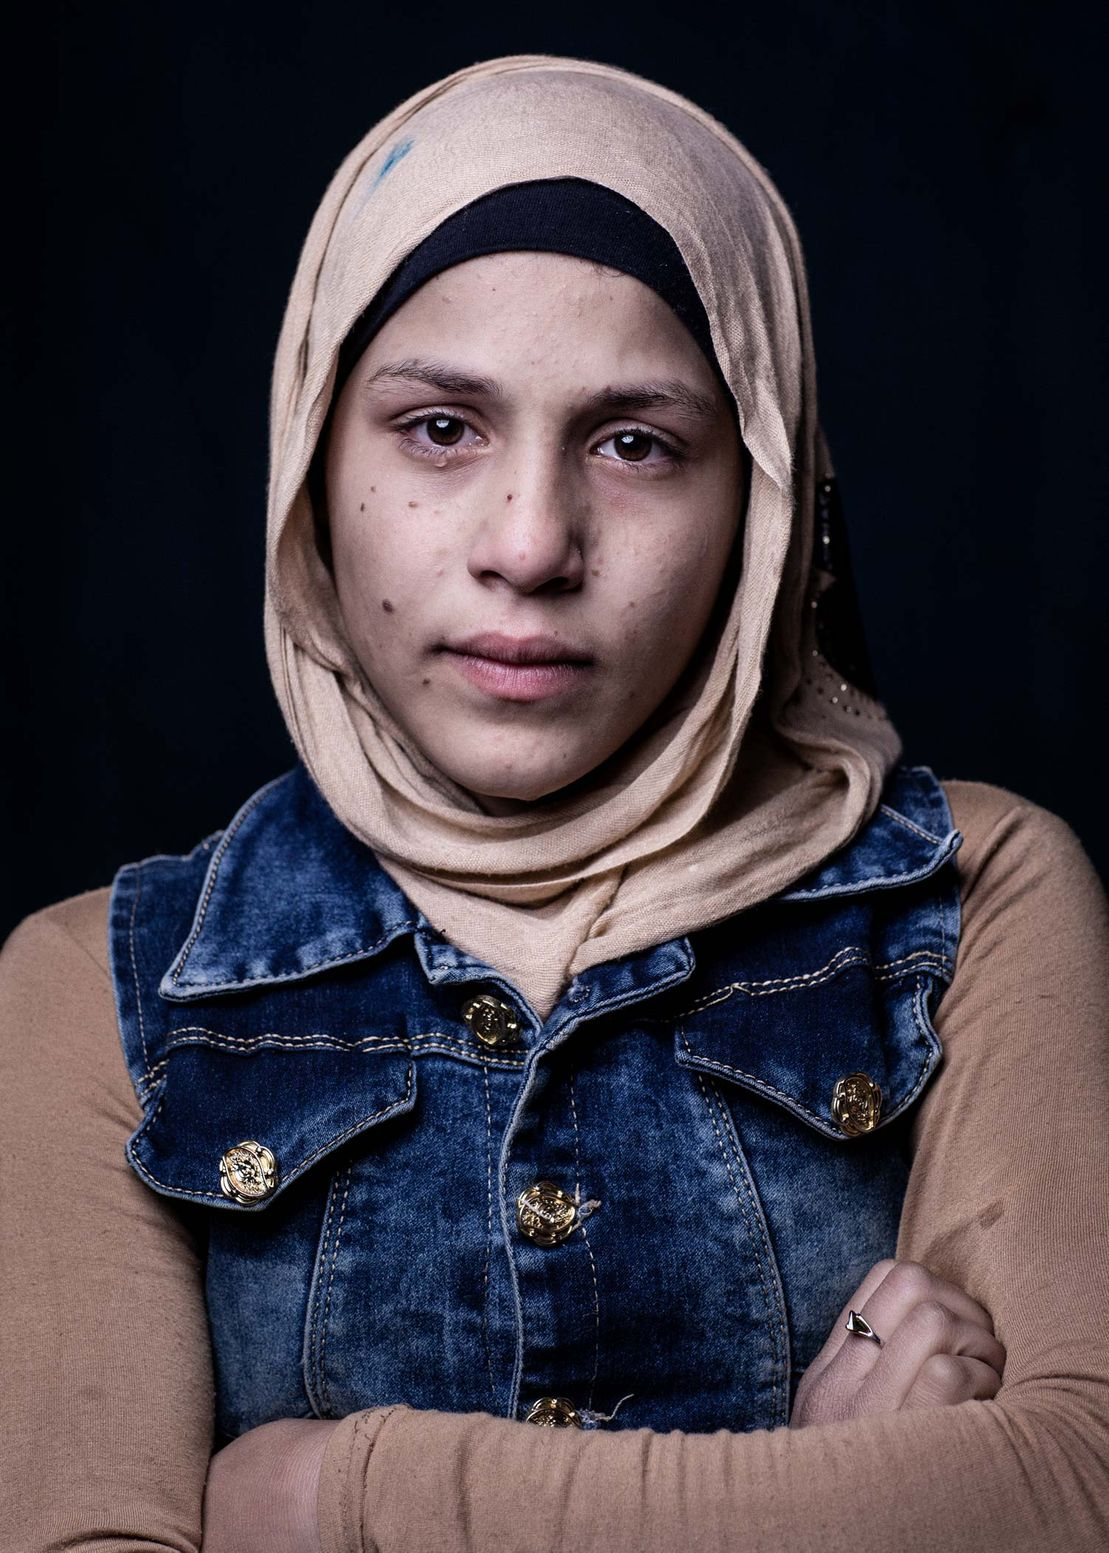 Portrait of the Syrian refugee Nada in the refugee Camp Zacharia in Lebanon. Portrait by Martin Thaulow.